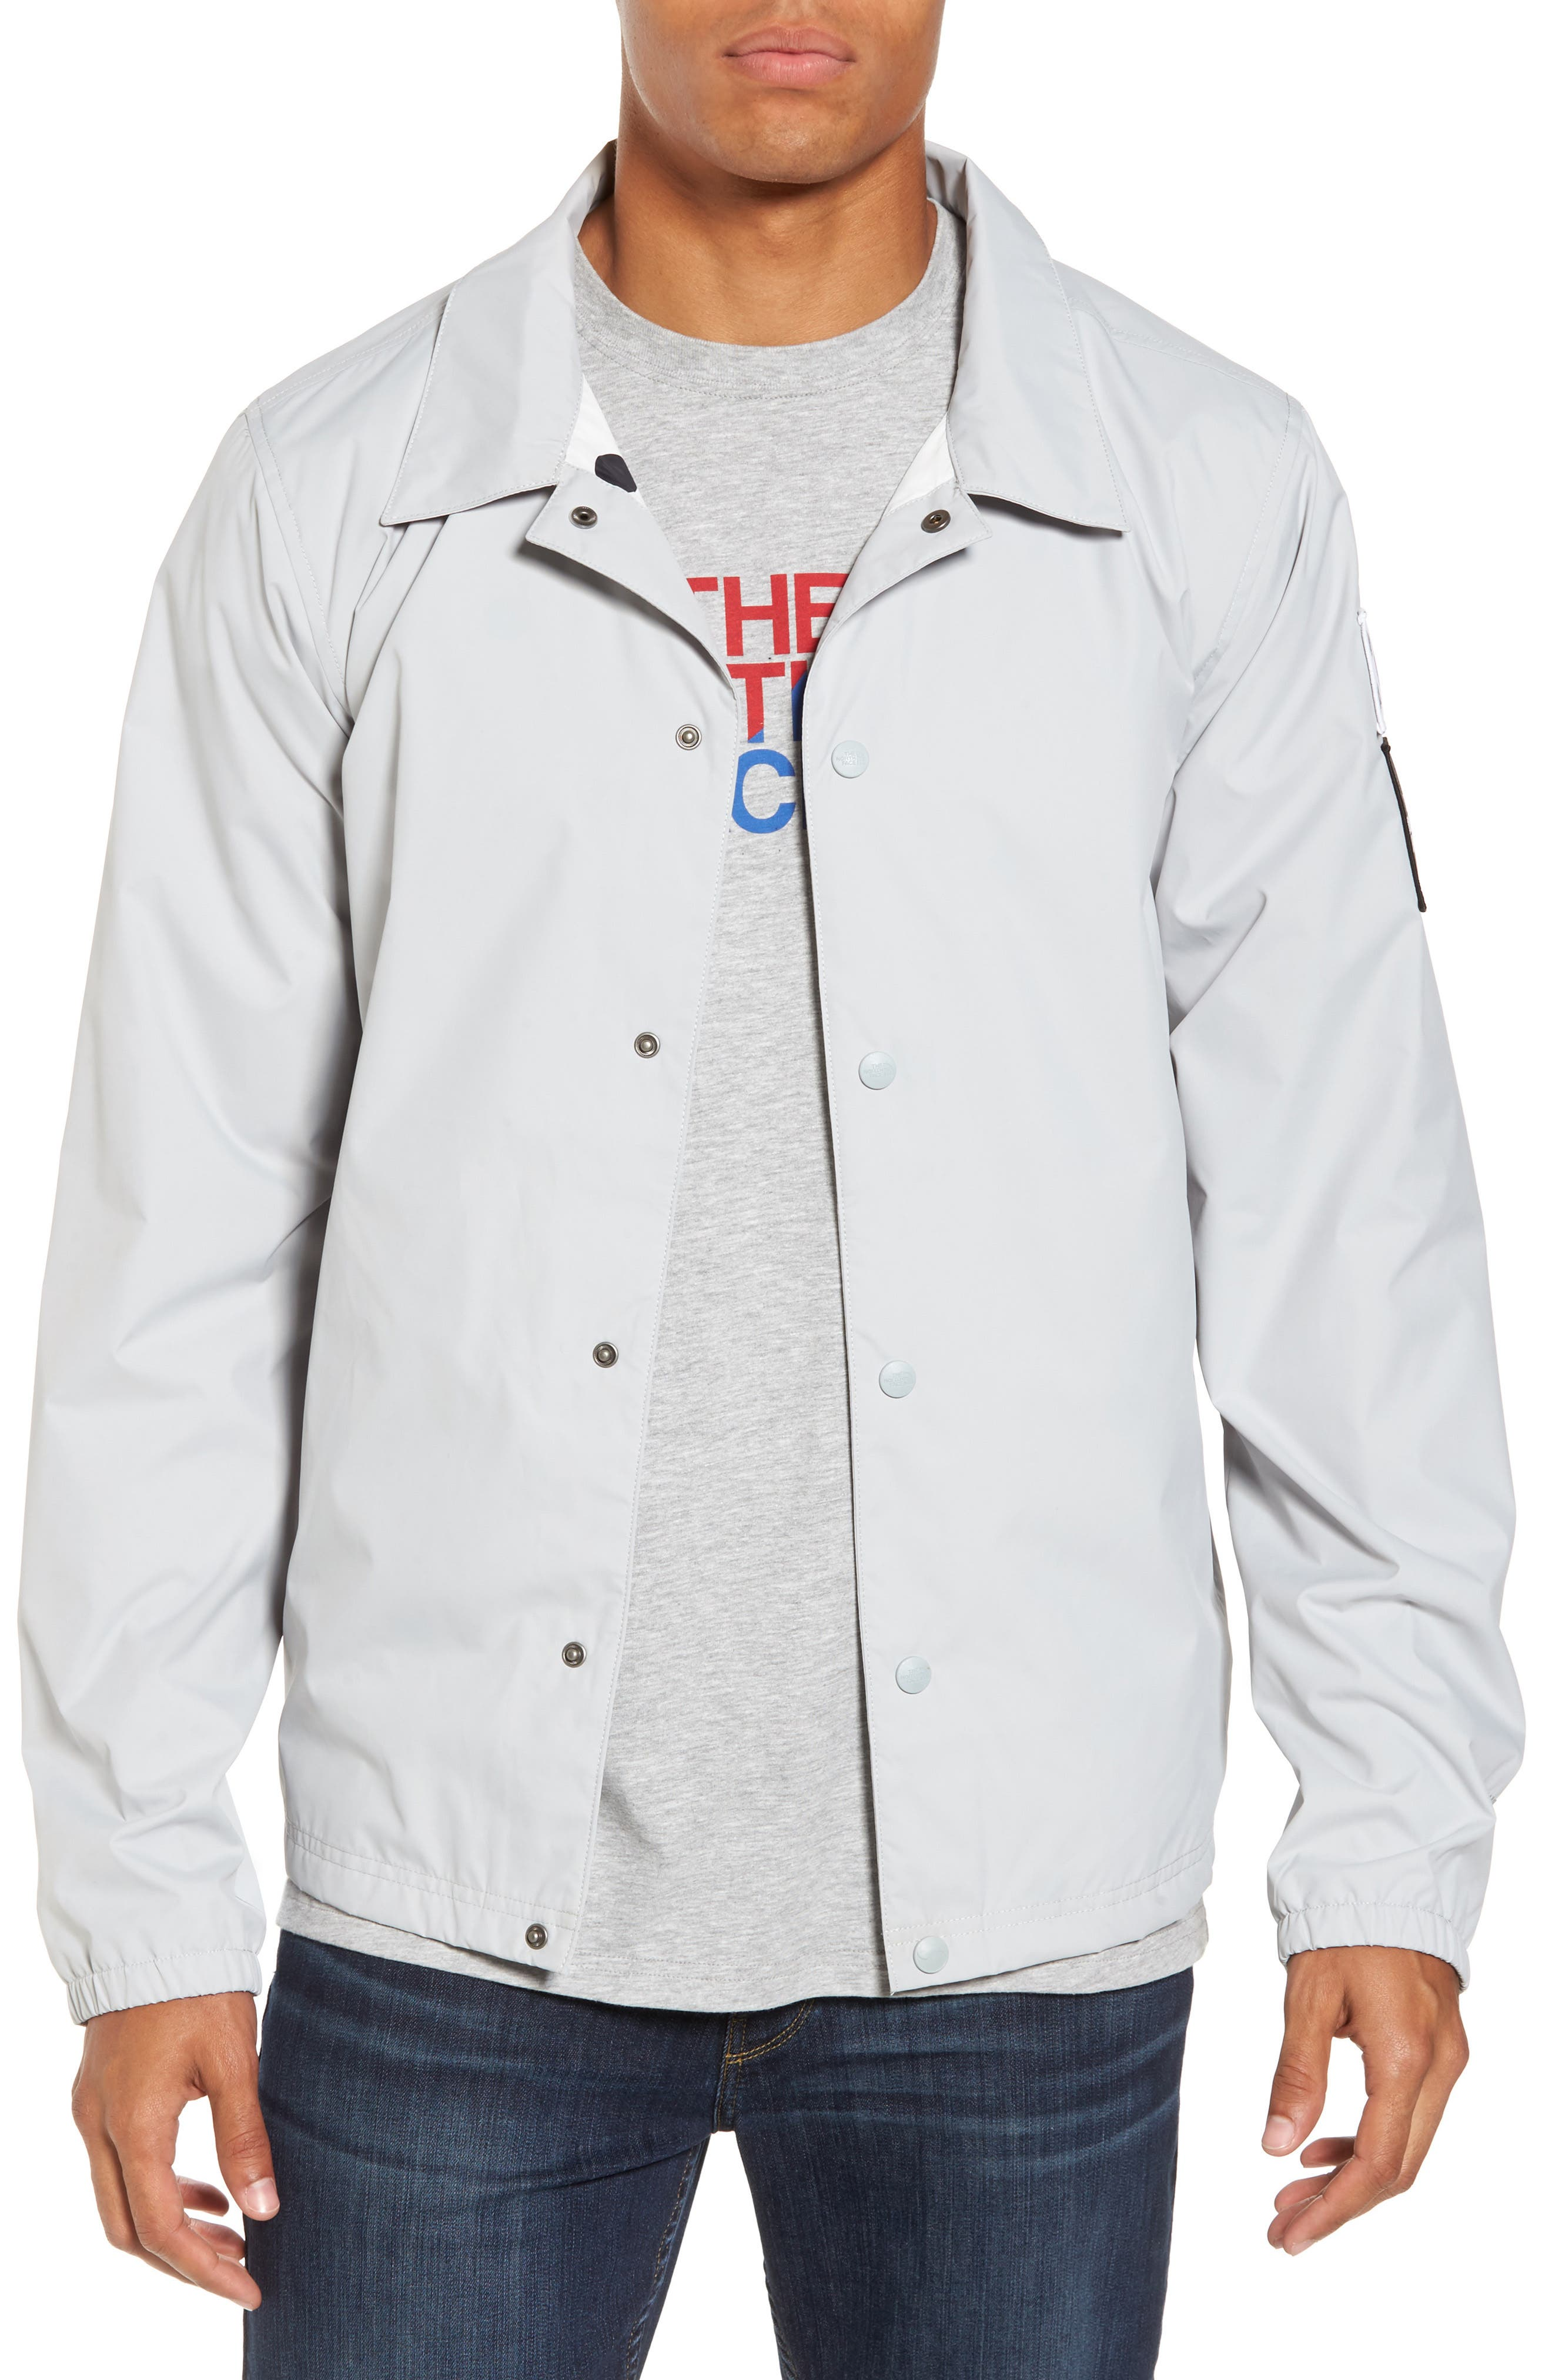 Main Image - The North Face International Collection Coach Jacket